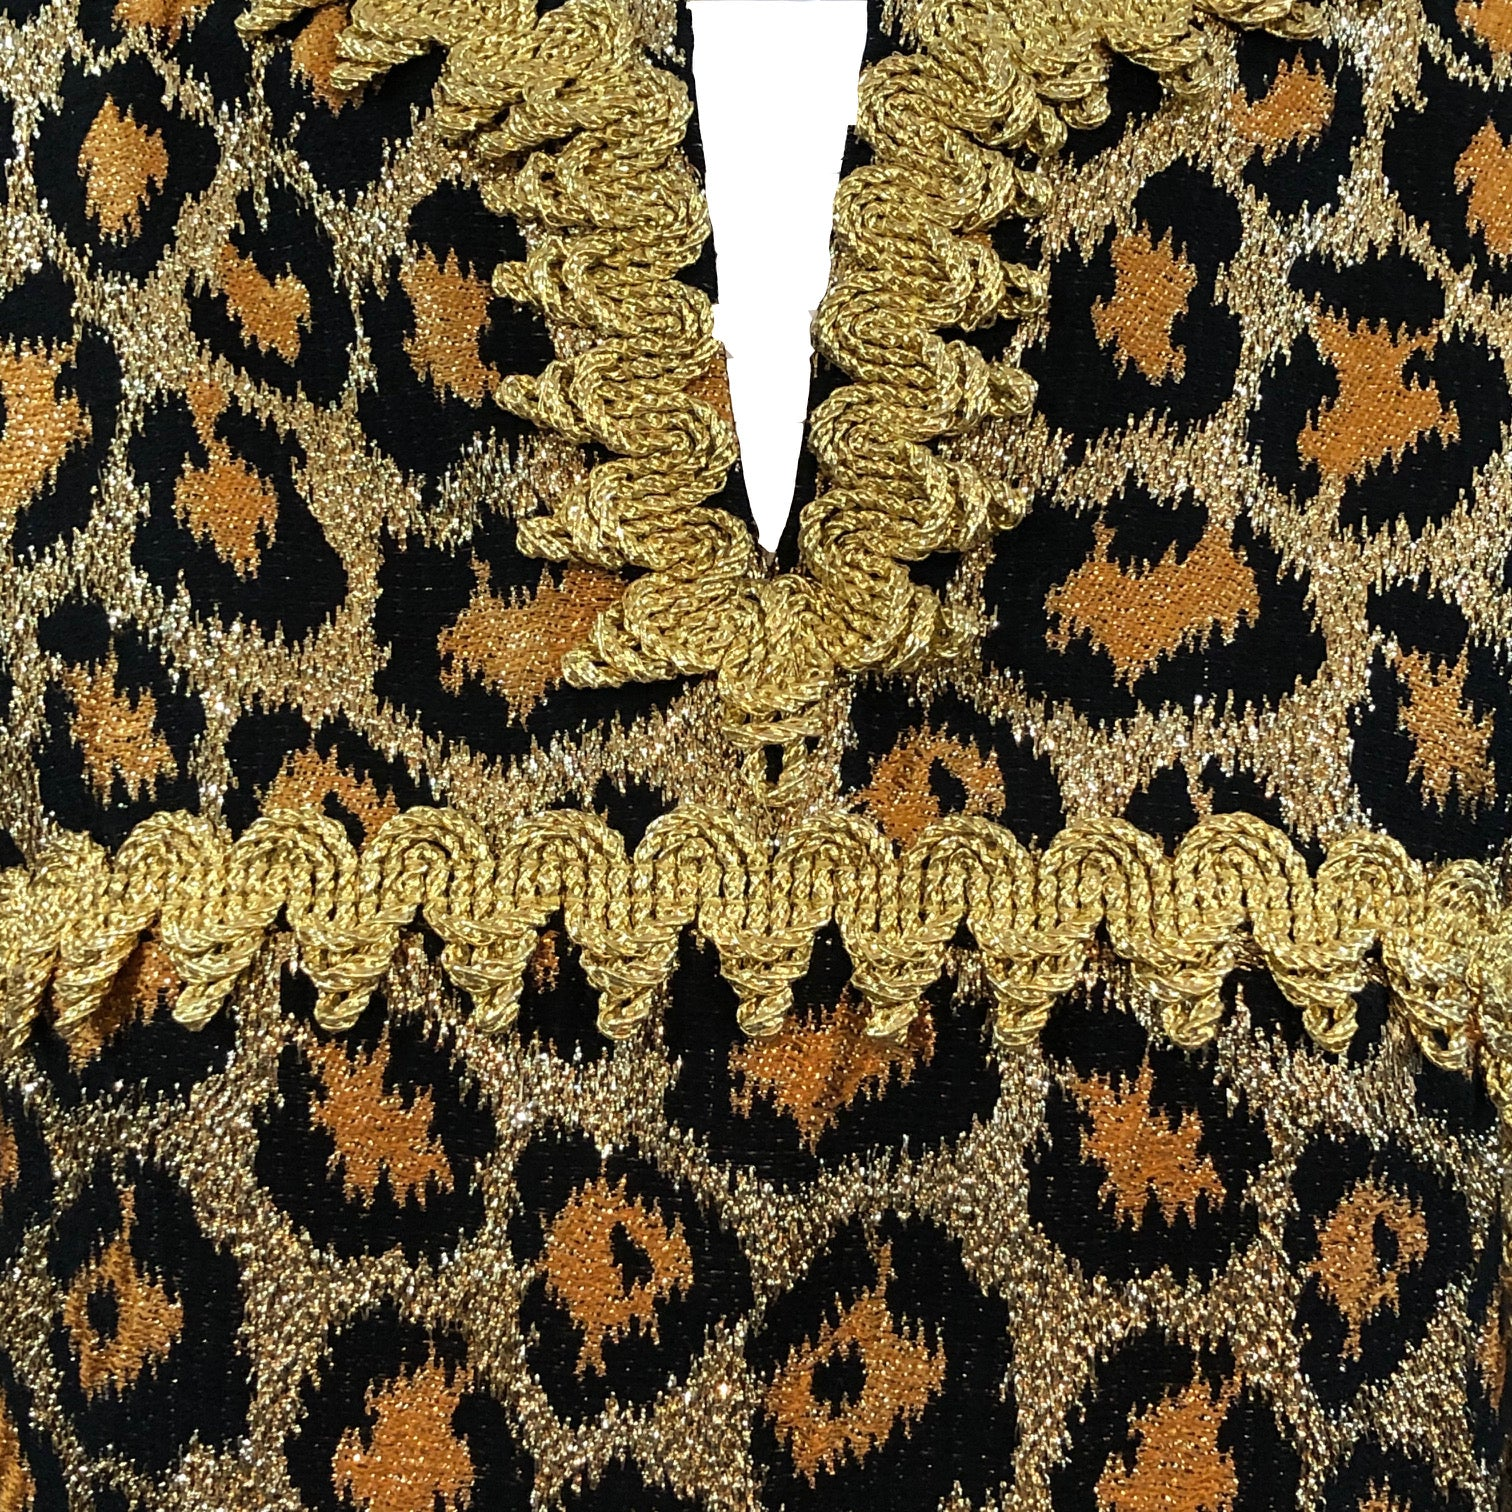 Outrageous 1960 Leopard Print Lame Gown Detail A 4 of 5